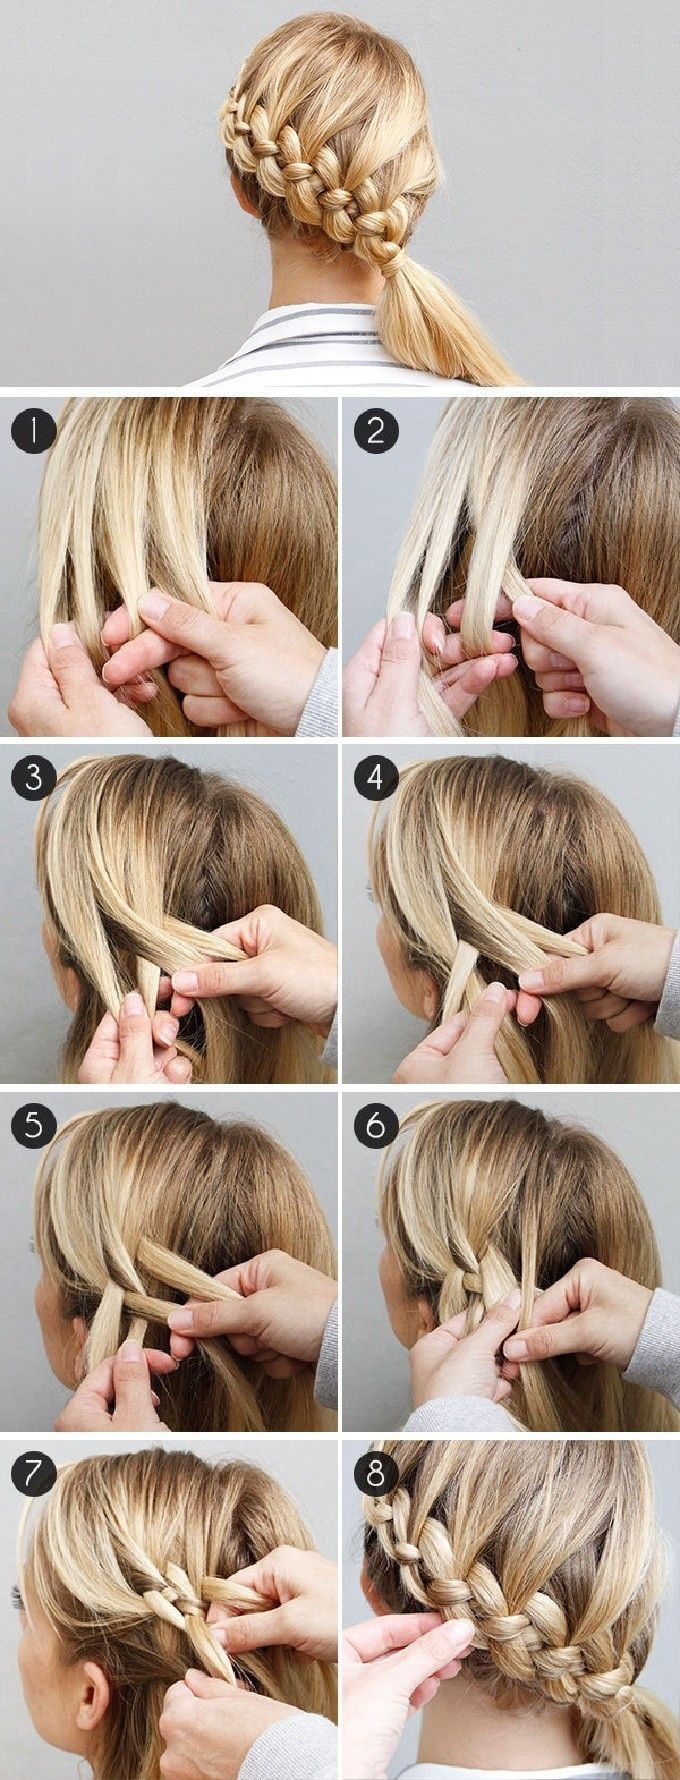 4 Strand Braid Tutorials: Side Four Strand Braid and Ribbon Four Strand Braid